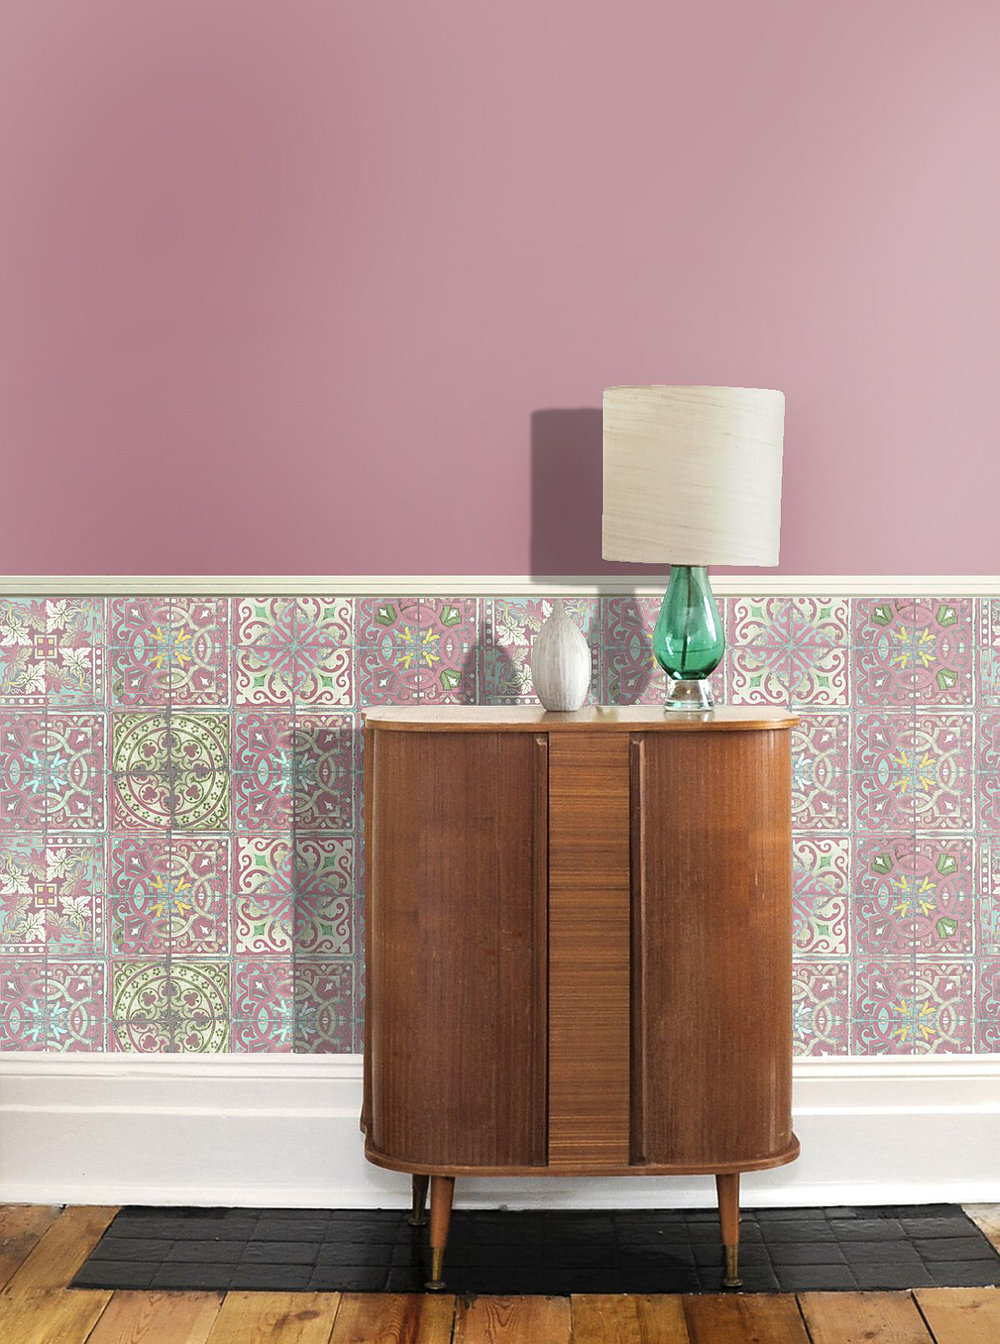 Louise Body Patchwork Dusty Pink Pink / Blue / White Wallpaper - Product code: Patchwork Dusty Pink